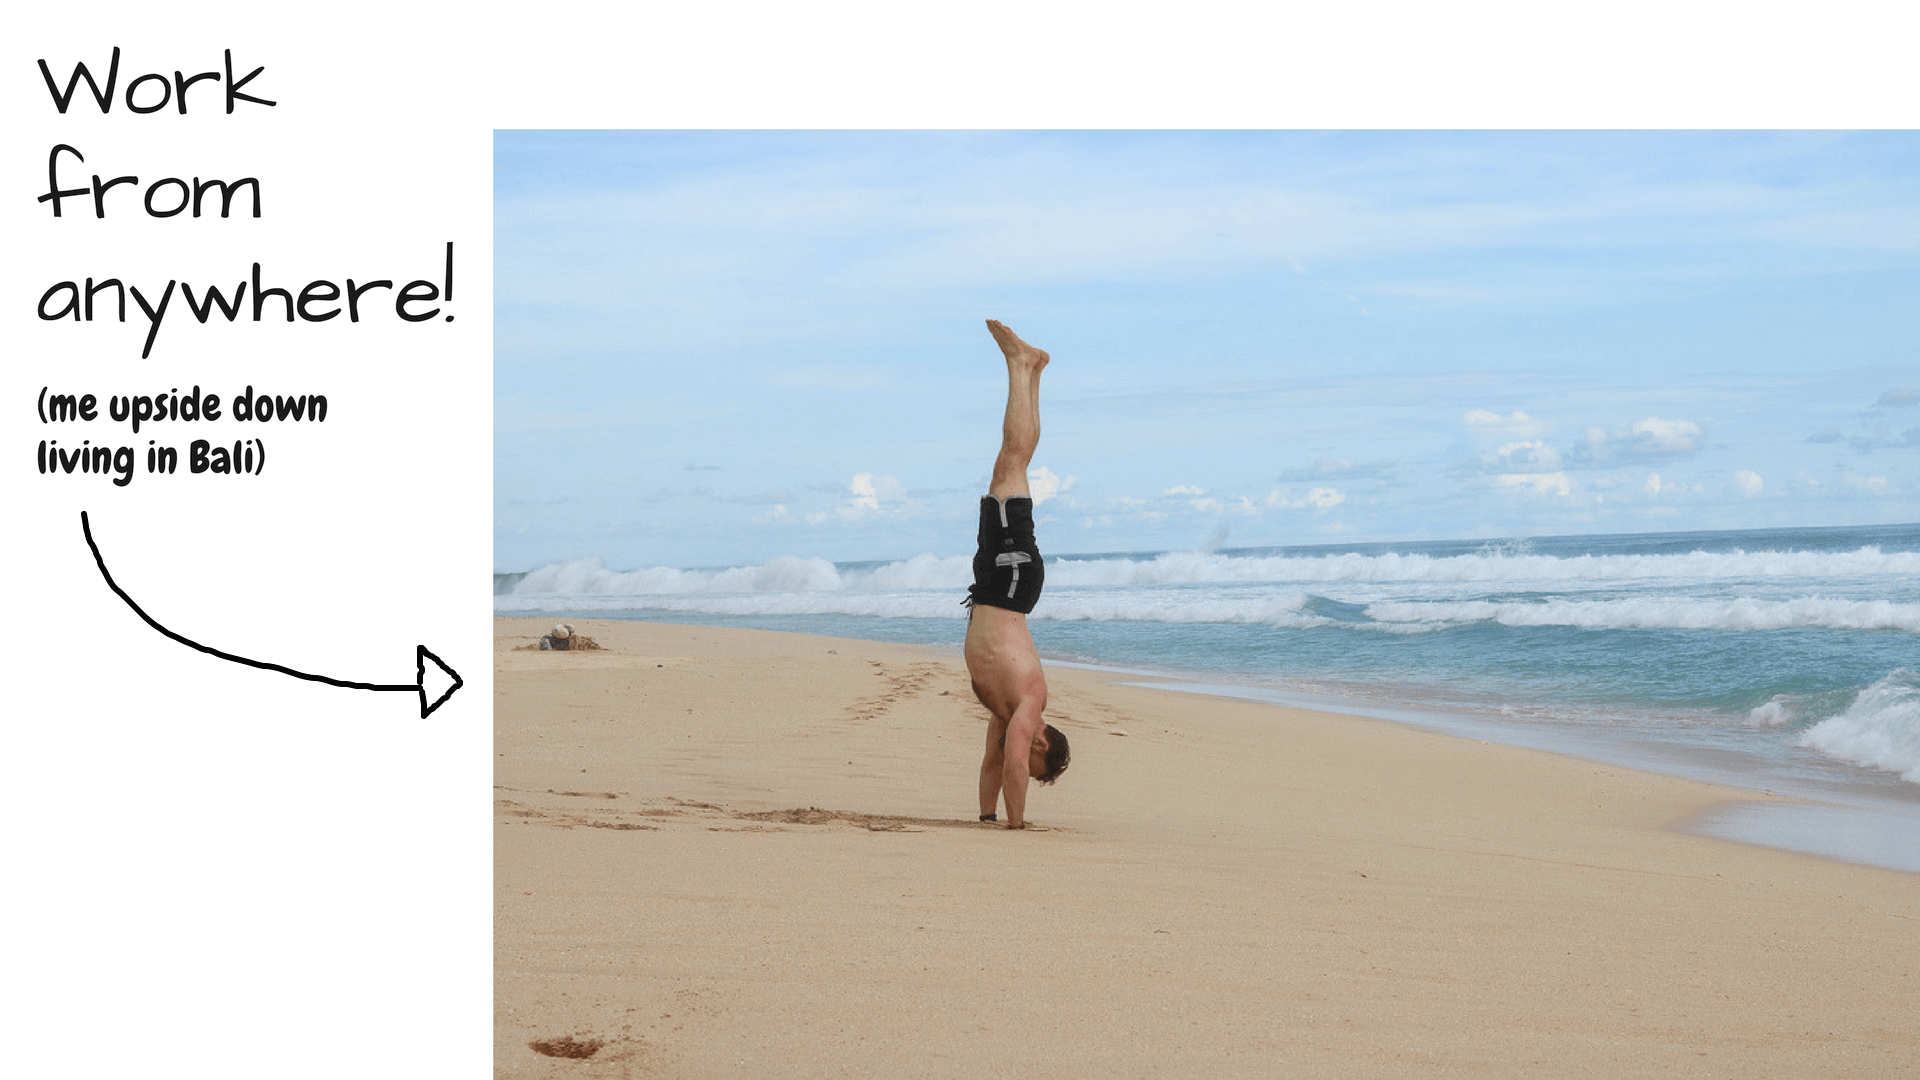 Work from anywhere as an online personal trainer